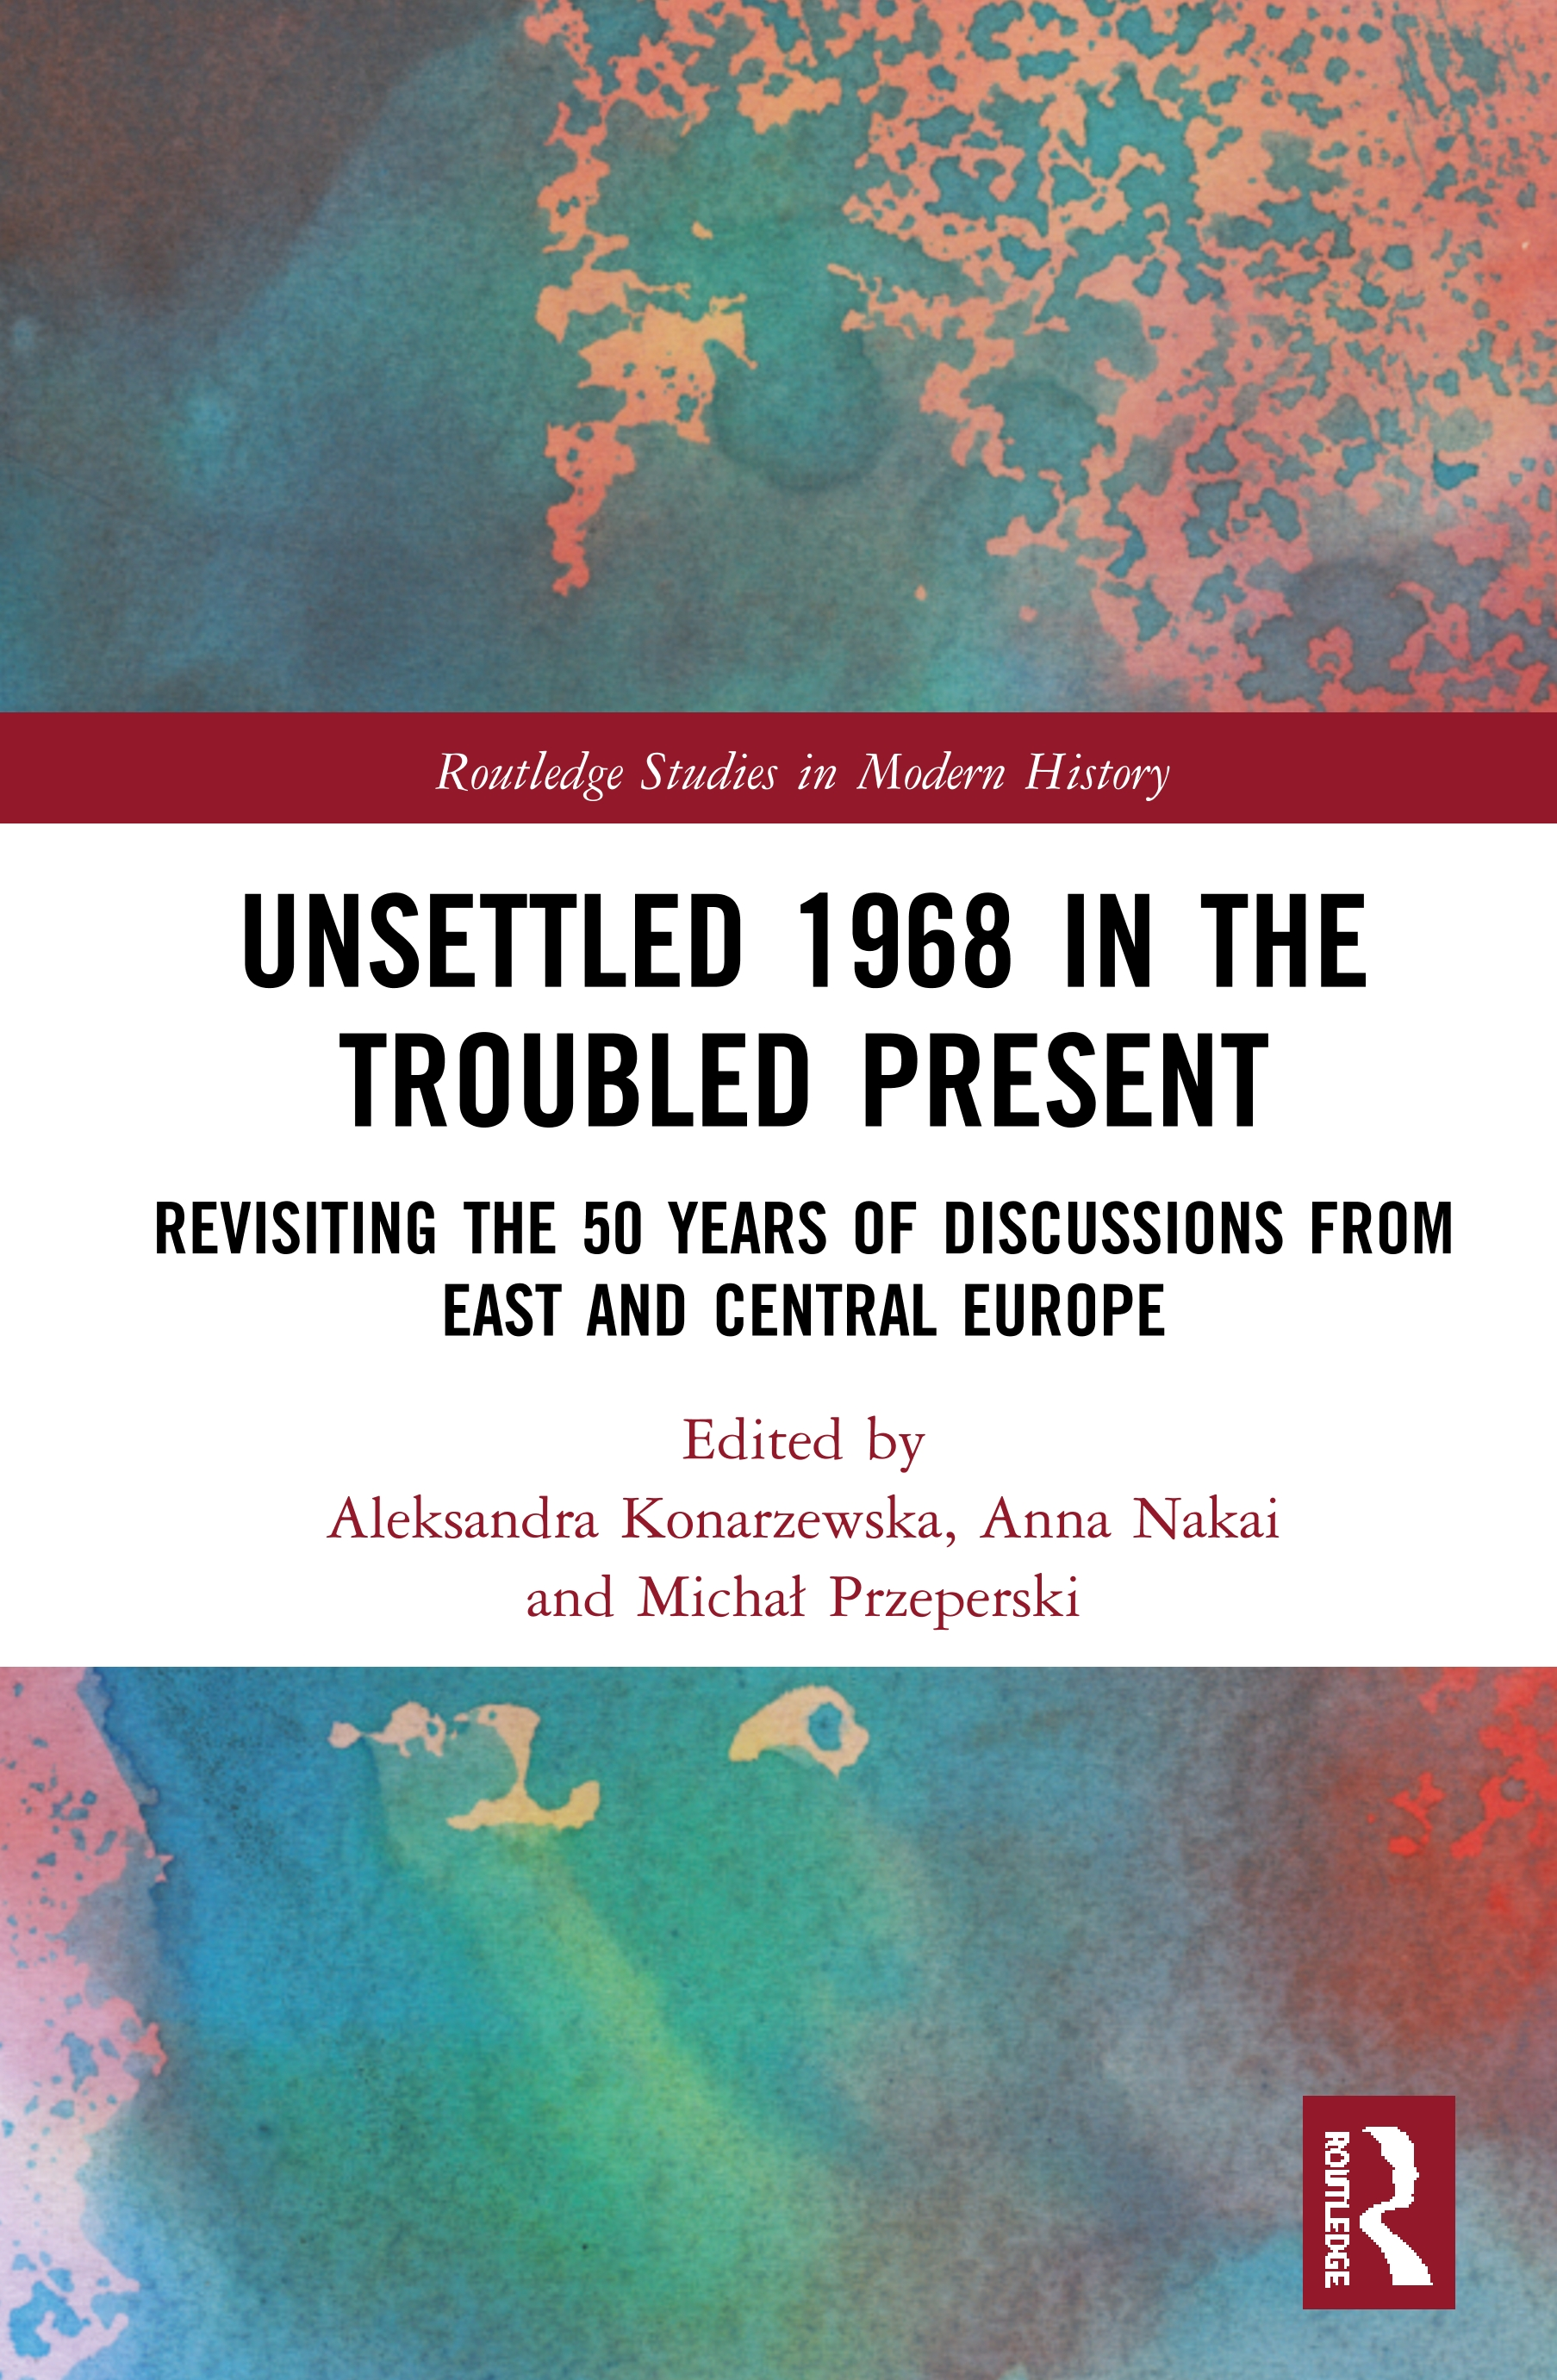 Unsettled 1968 in the Troubled Present: Revisiting the 50 Years of Discussions from East and Central Europe book cover